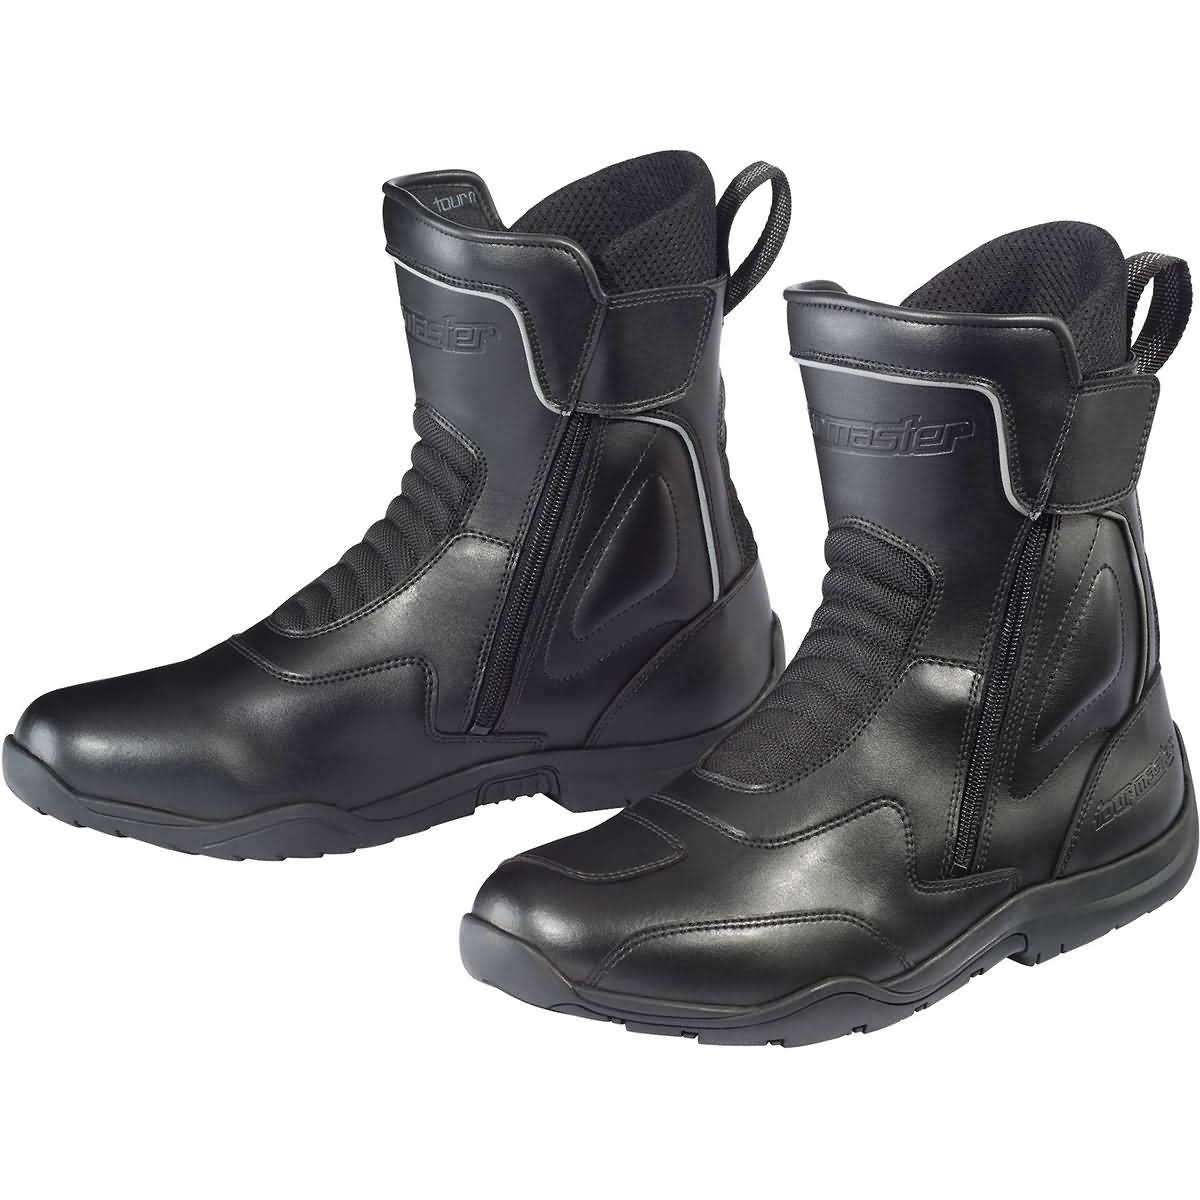 Tour Master Flex WP Men's Street Boots-8615